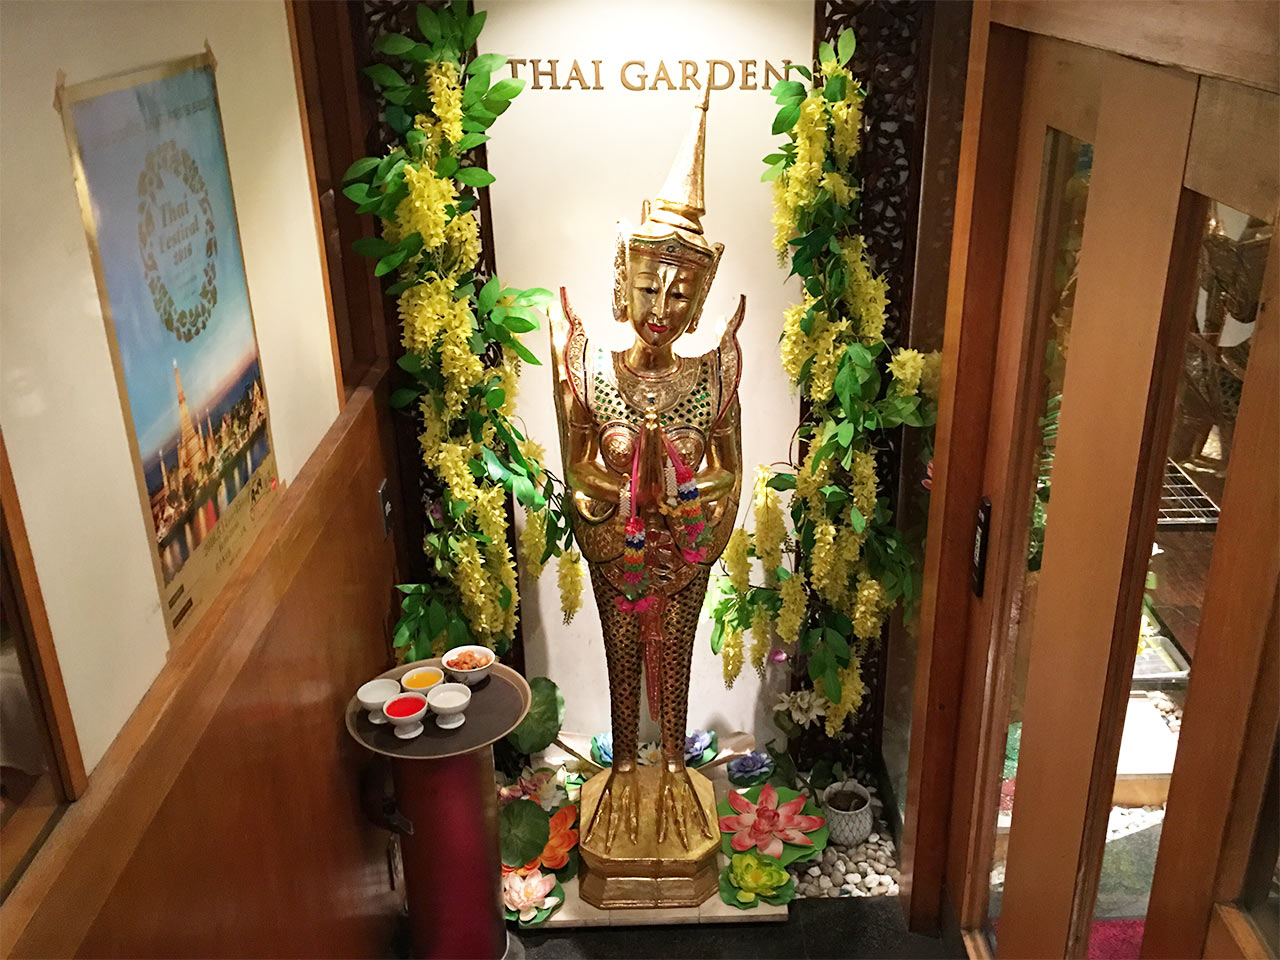 shibuya-thai-garden-entrance